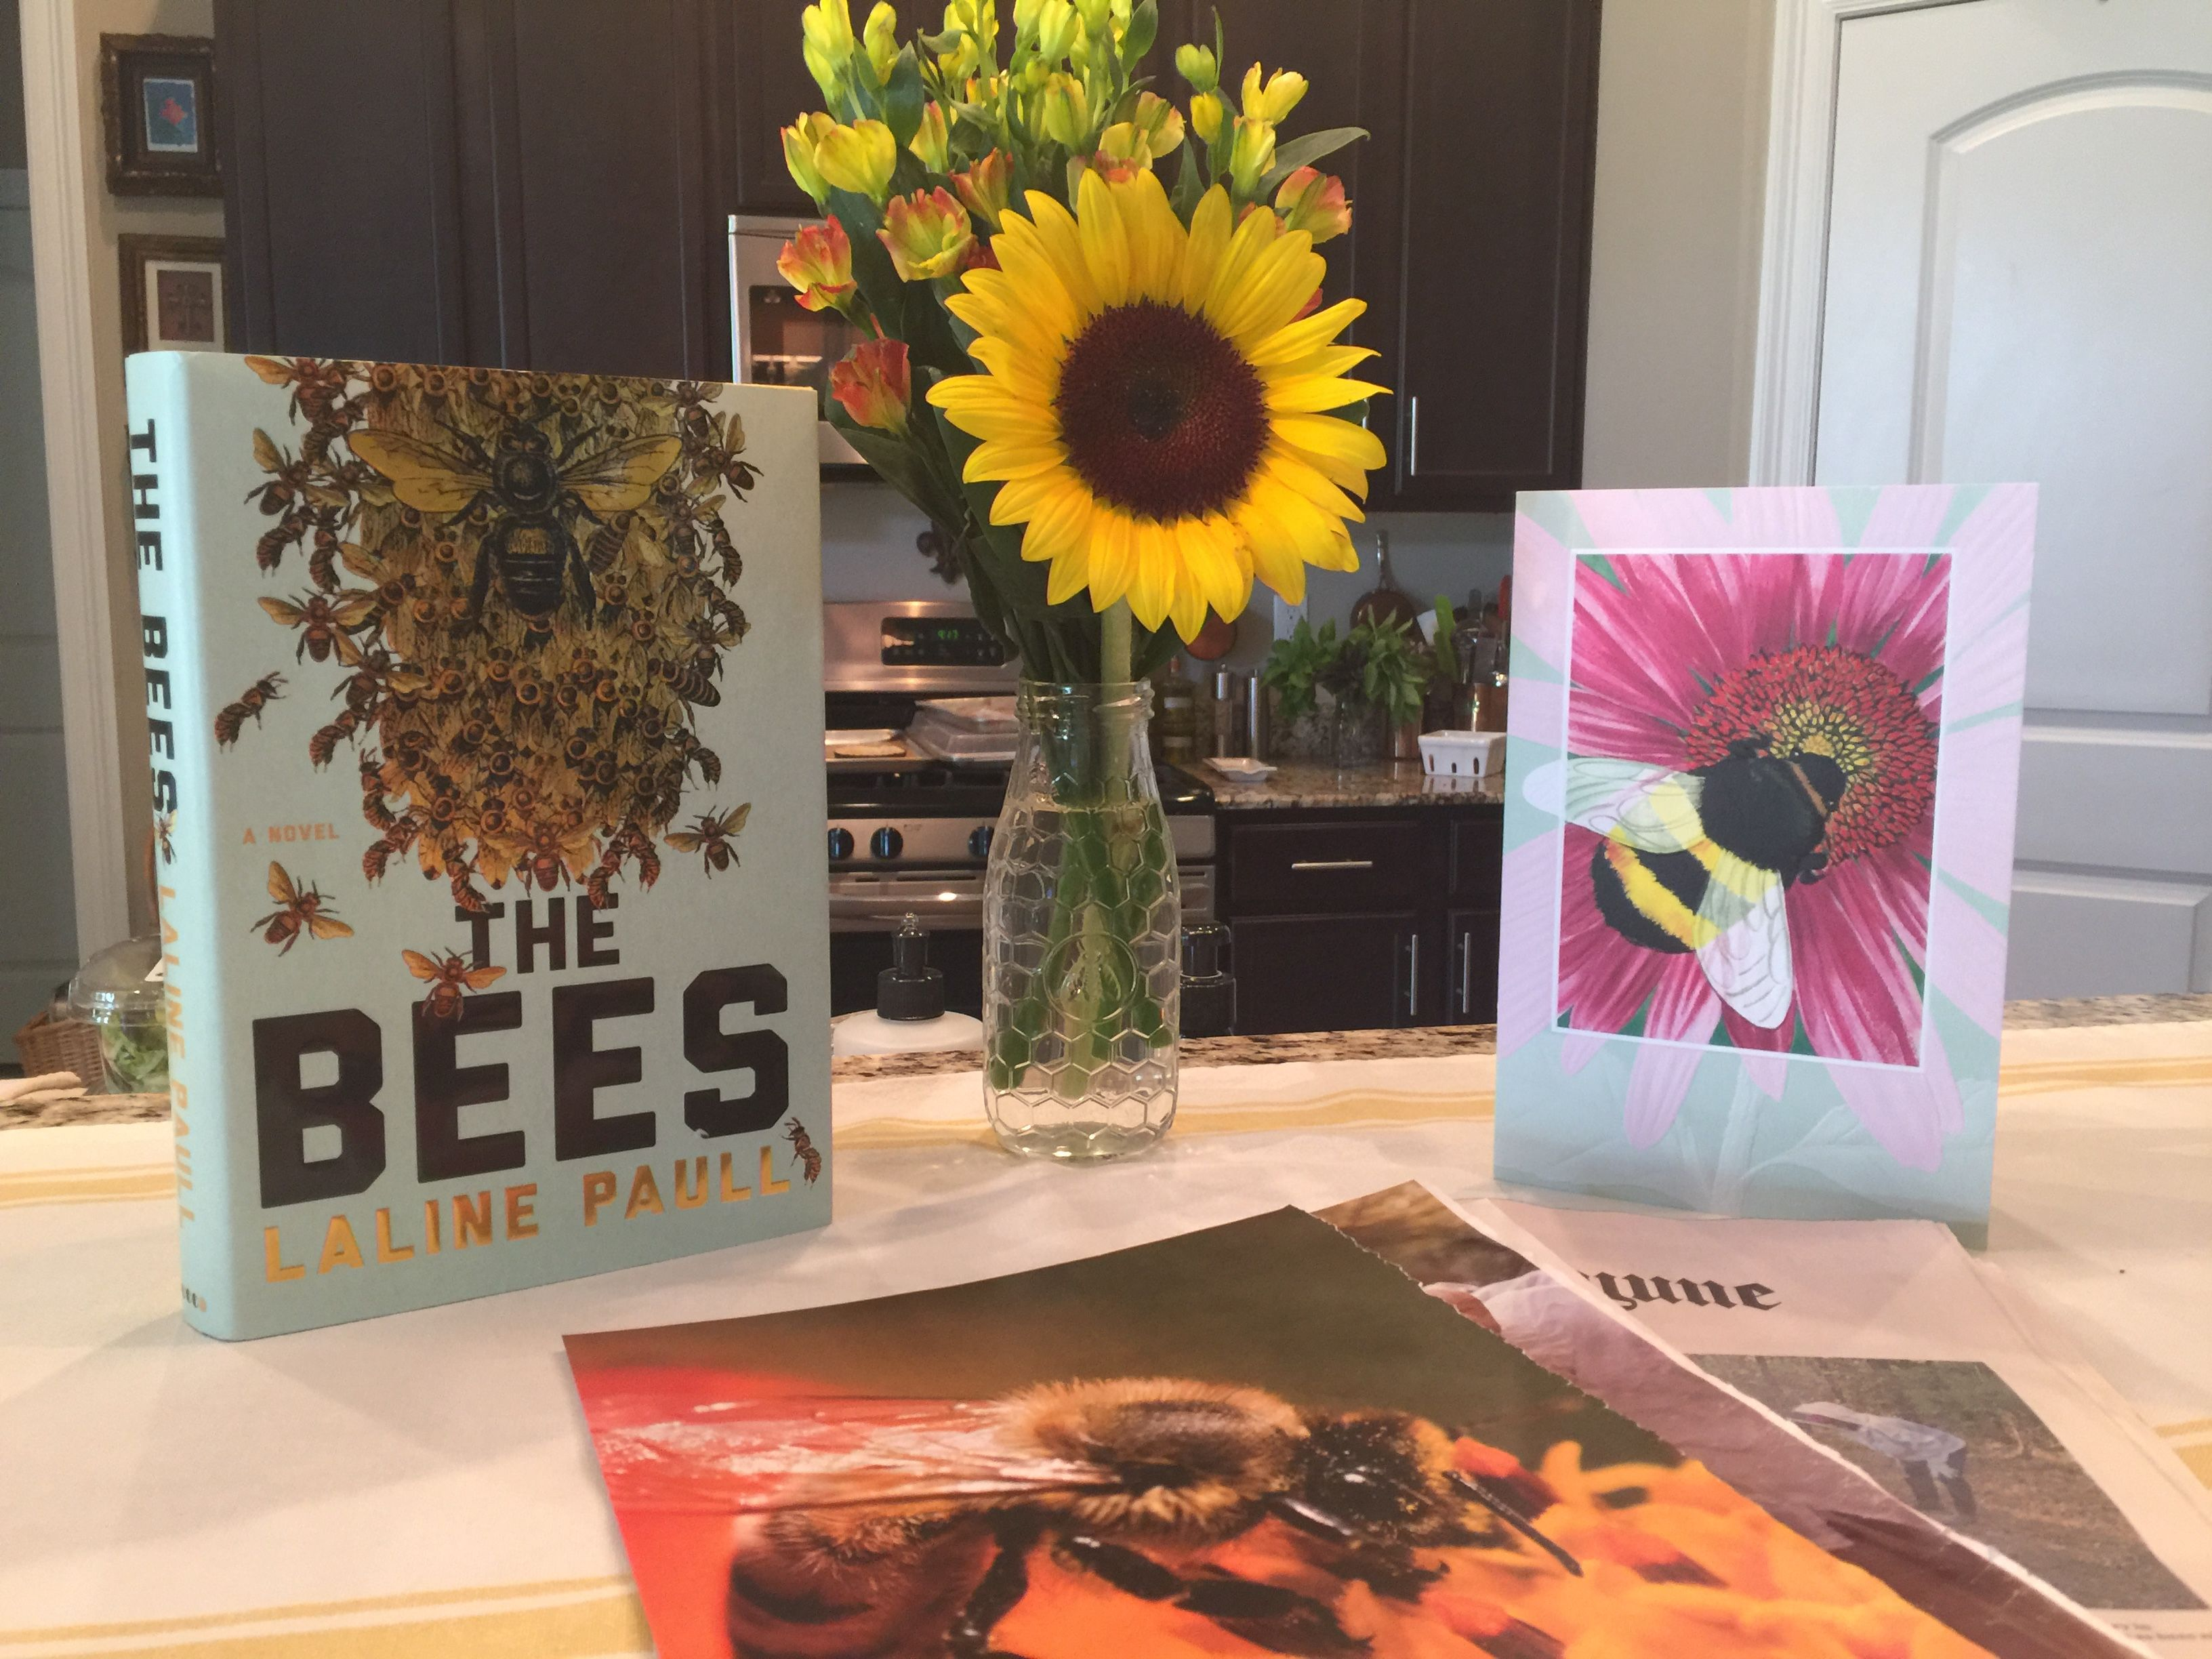 The Bees By Laline Paull Book Club Meeting Book Club Books Bee